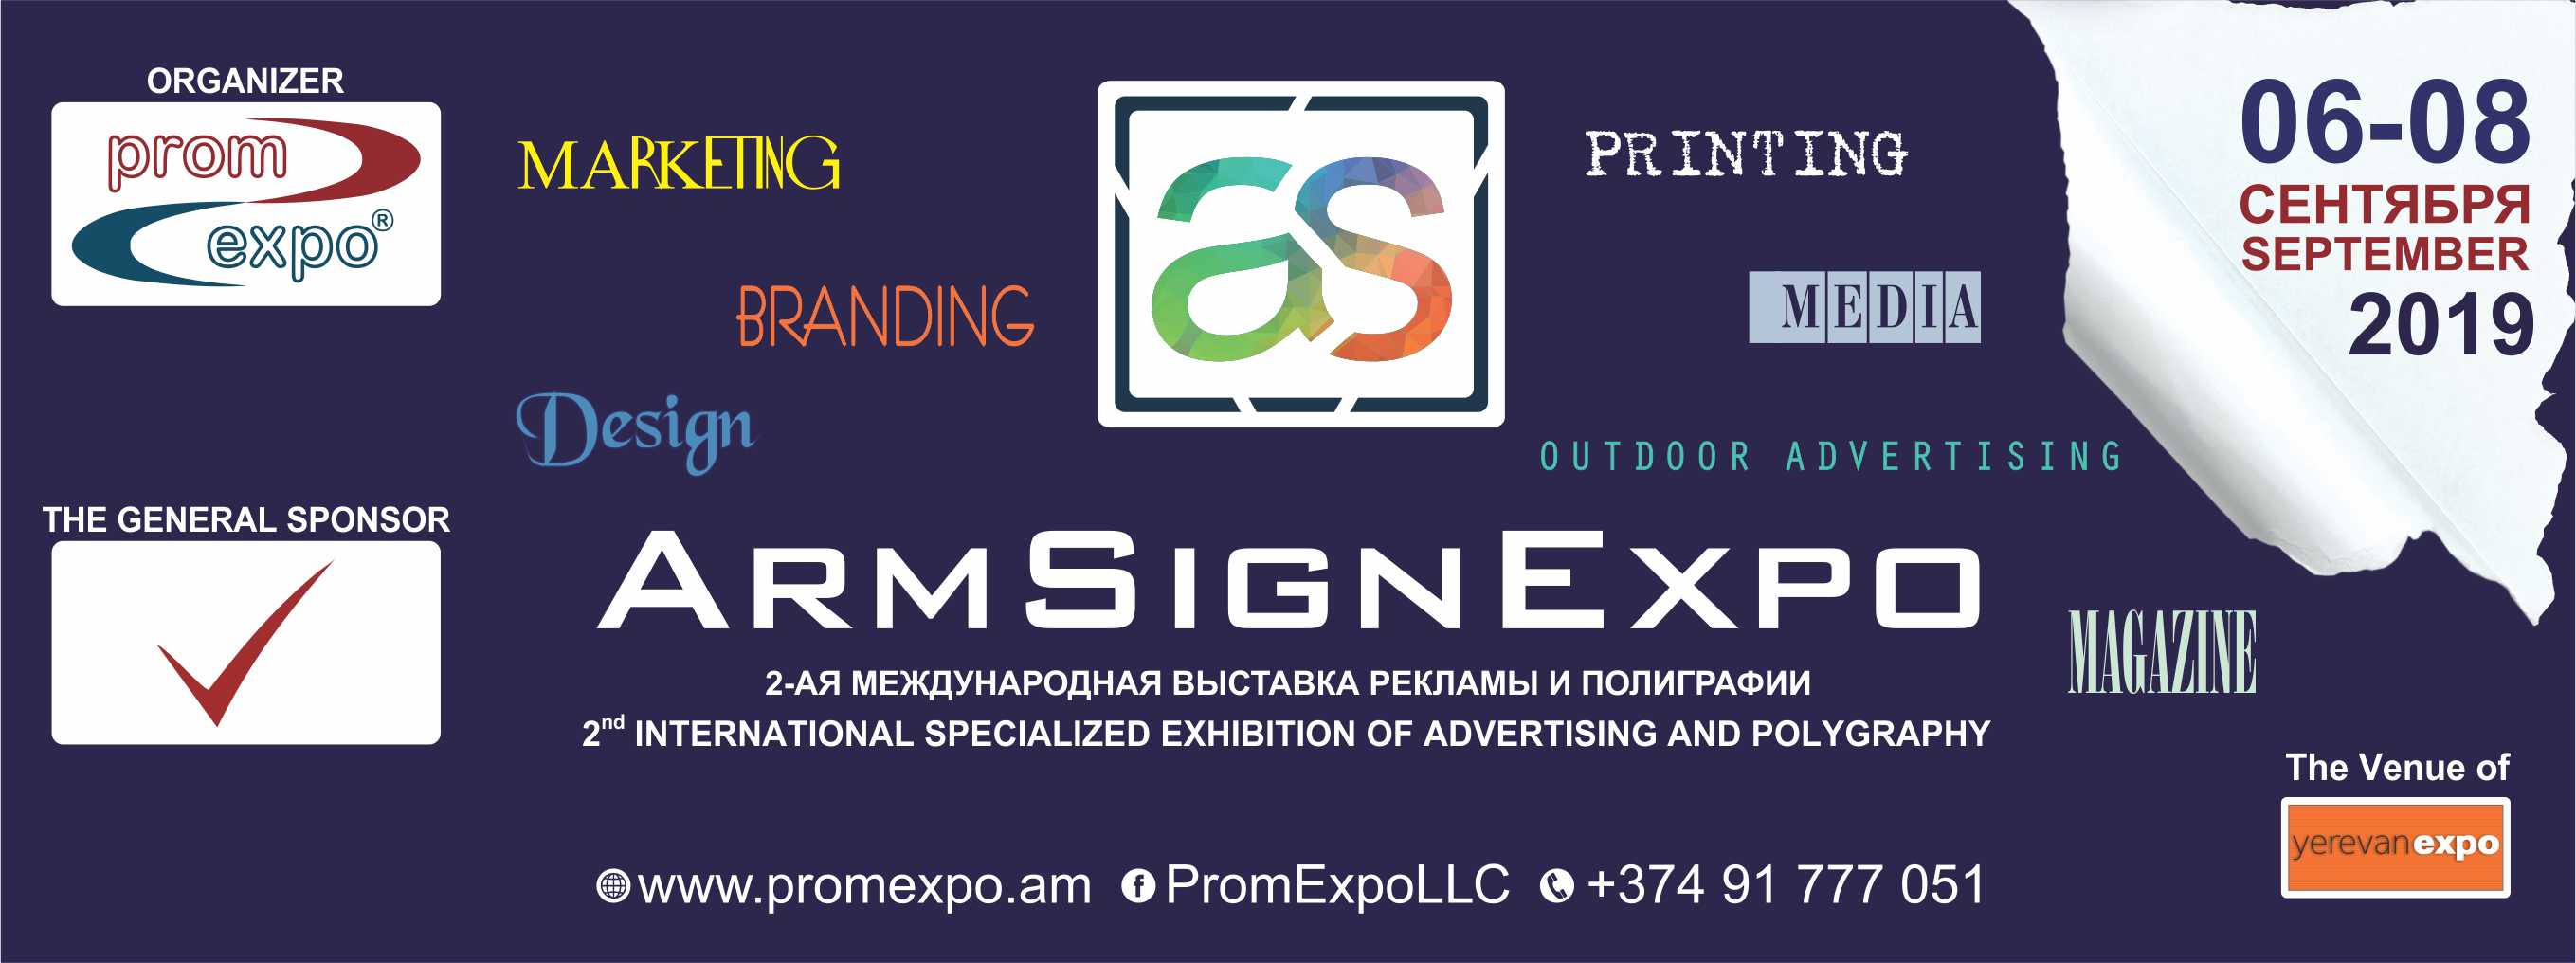 ArmSign Expo 2019